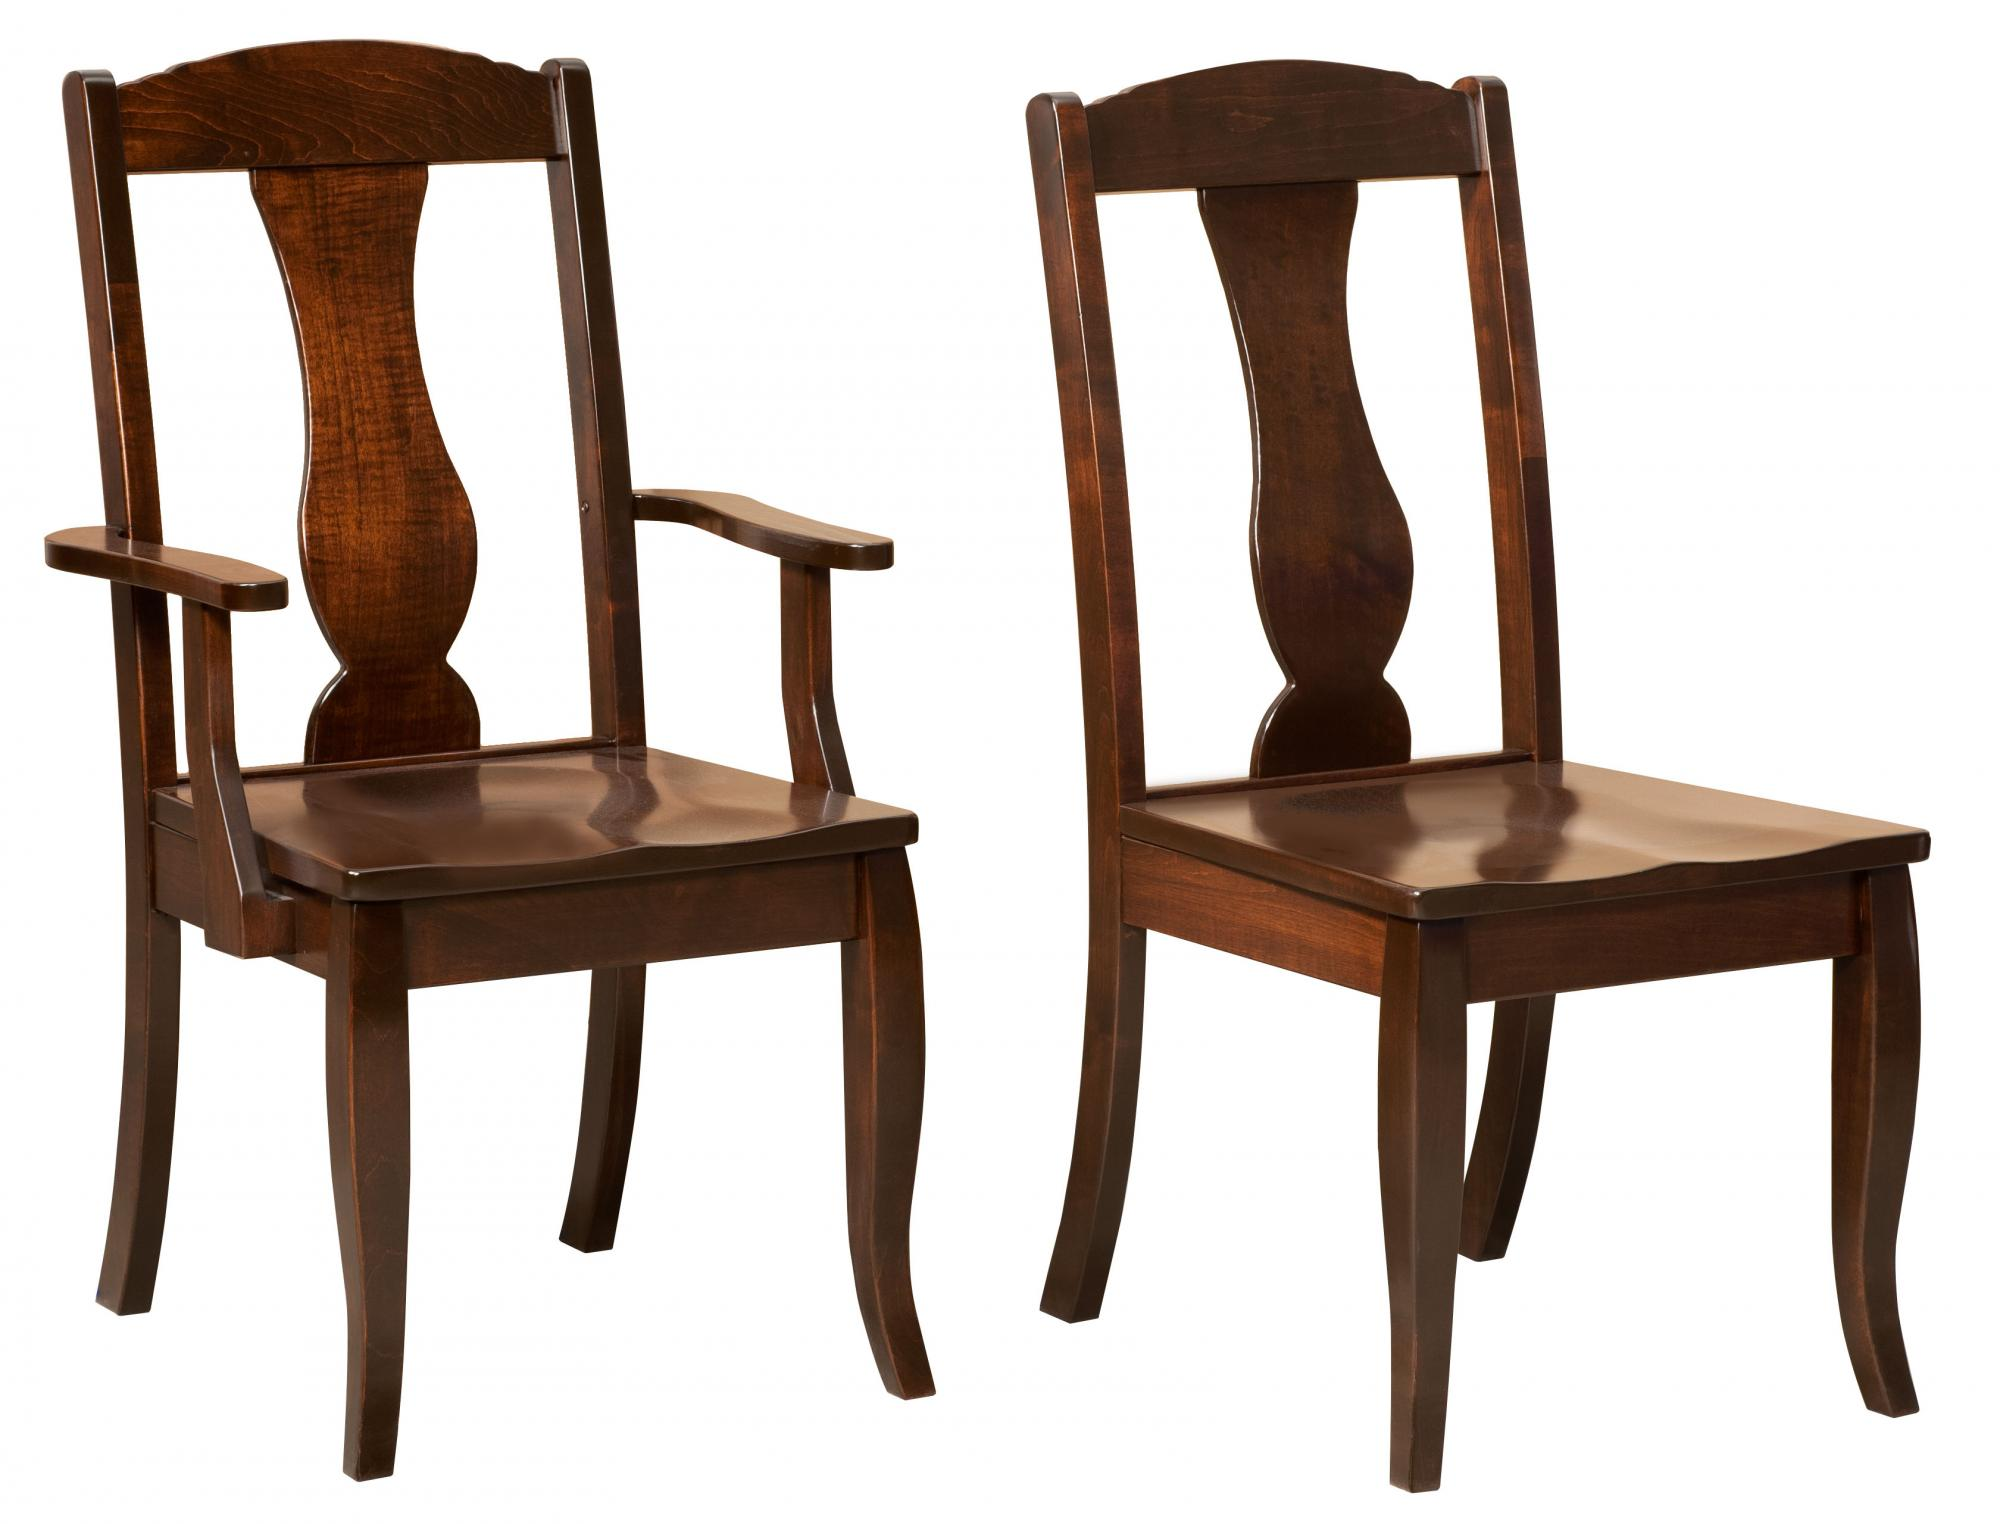 Austin dining chairs amish furniture store mankato mn